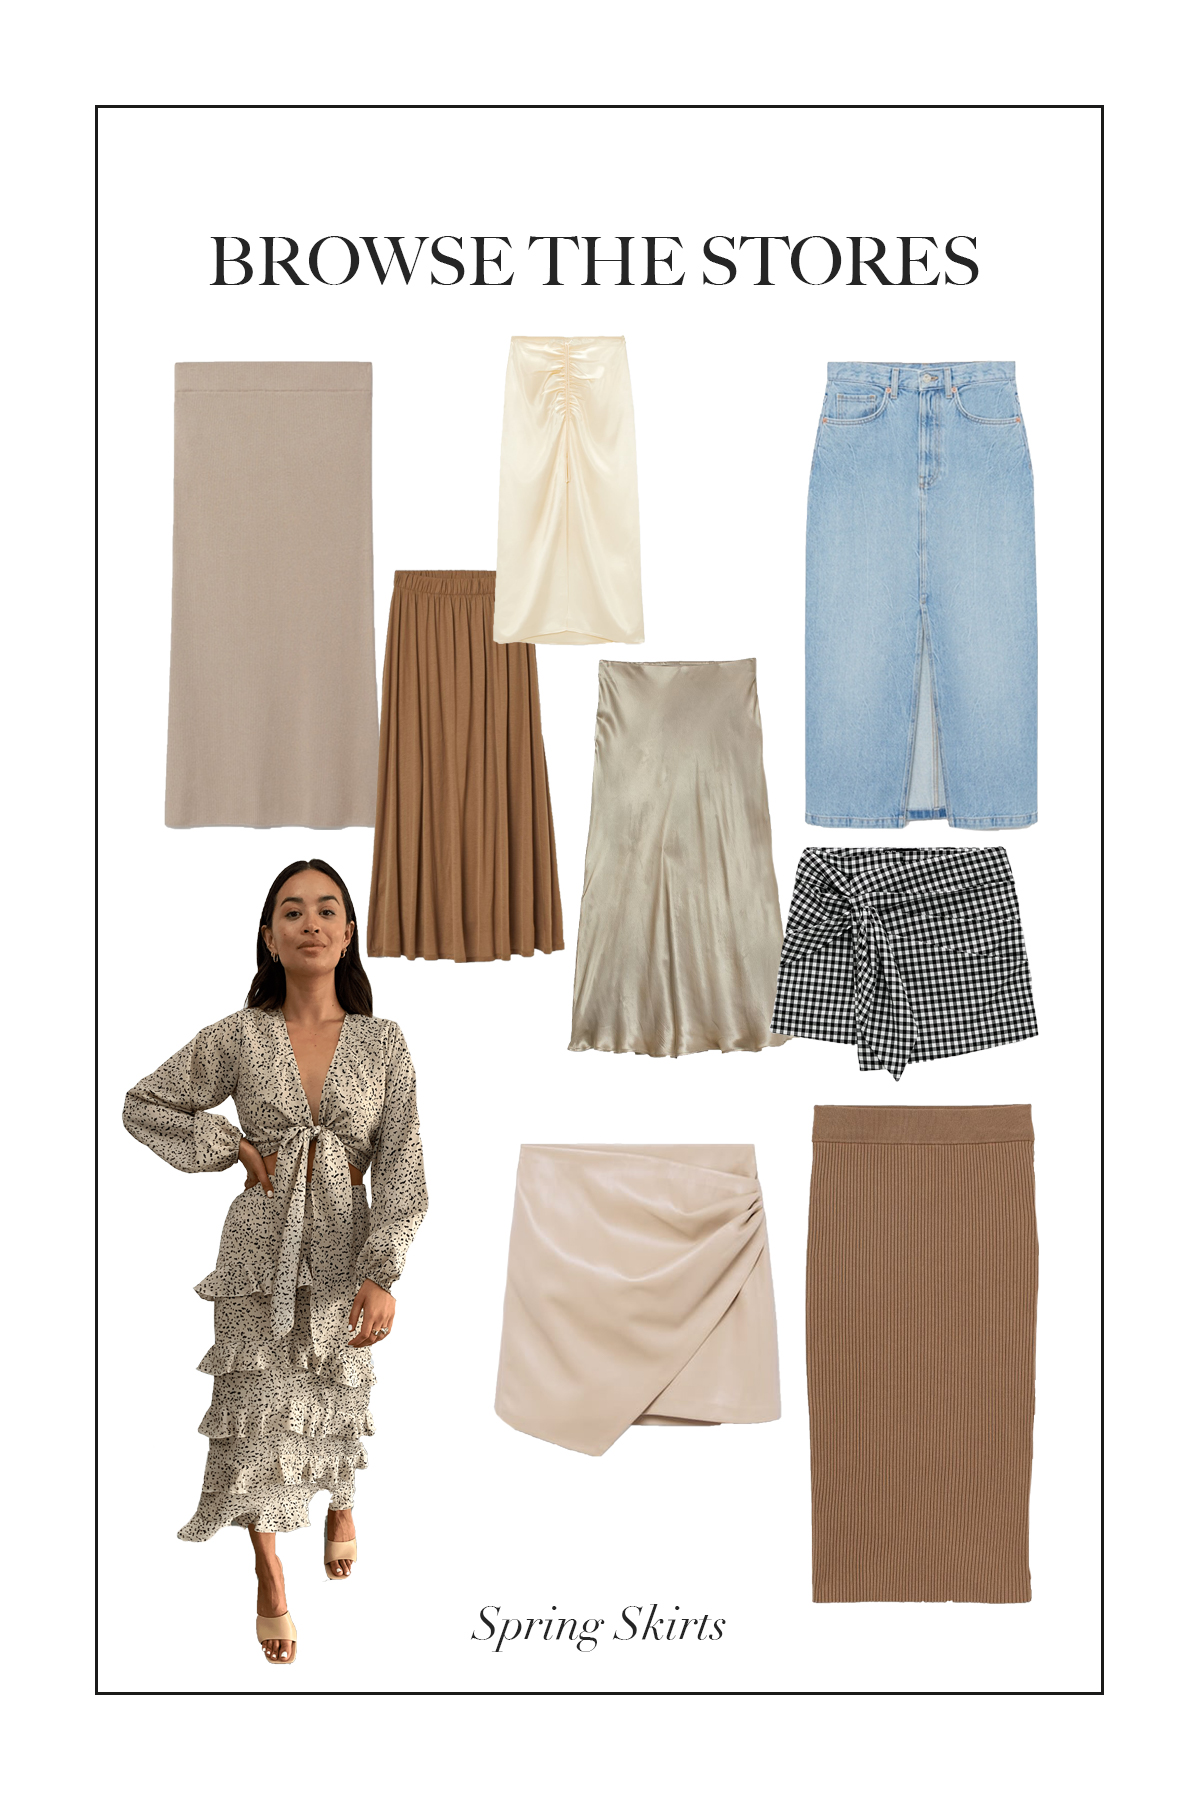 When the weather starts getting warmer we can say goodbye to the jeans and joggers and hello to spring skirts!